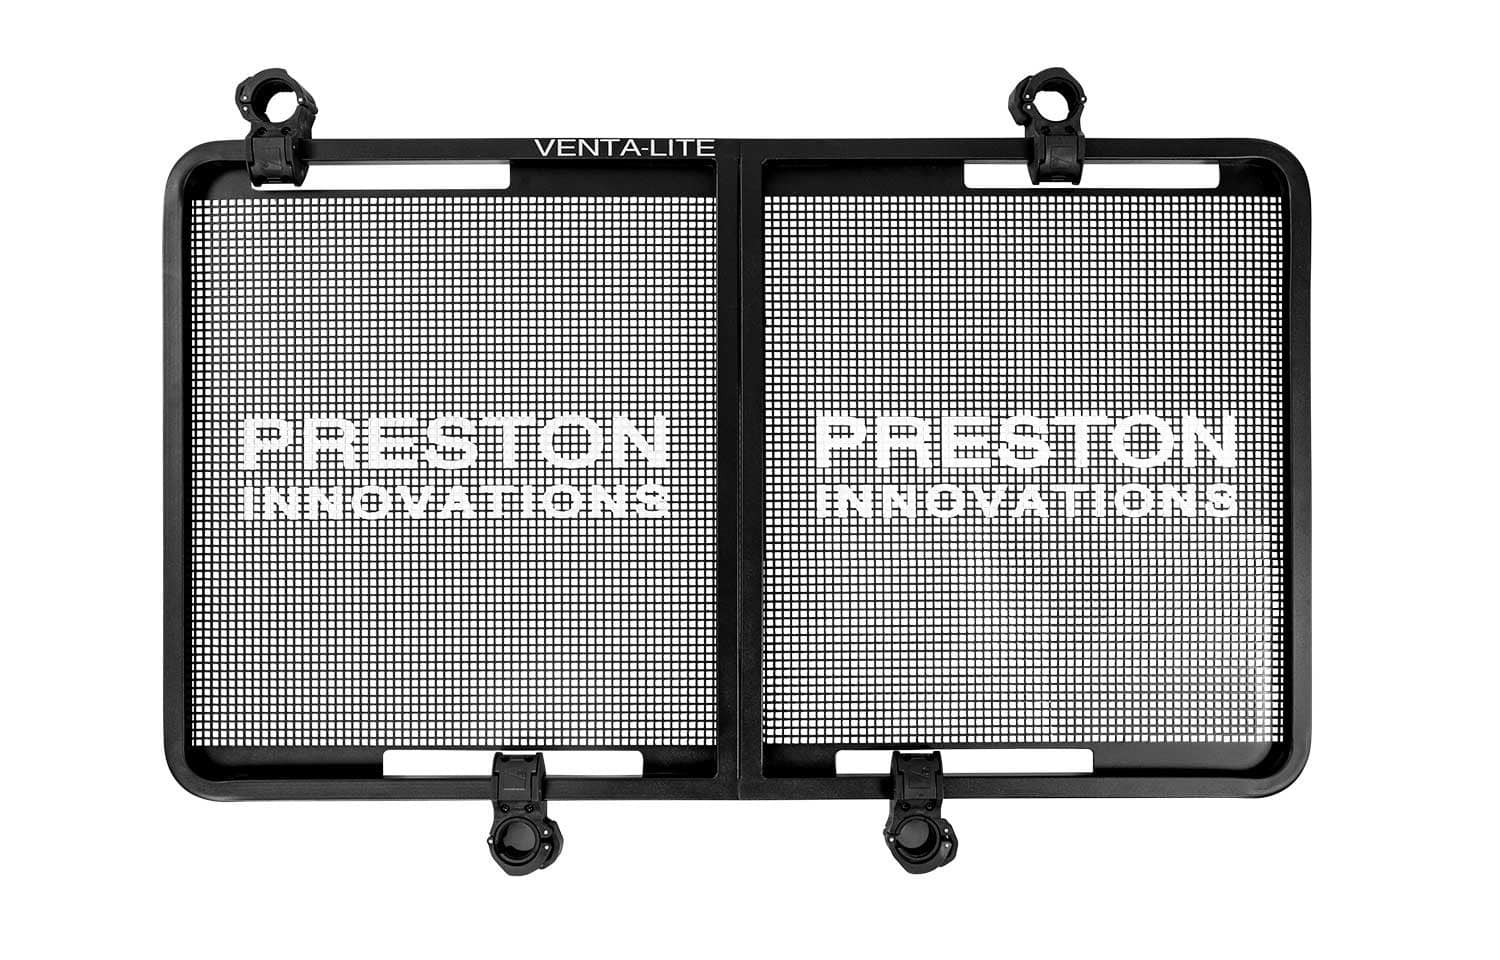 Preston Offbox 36 Venta-lite Side Tray